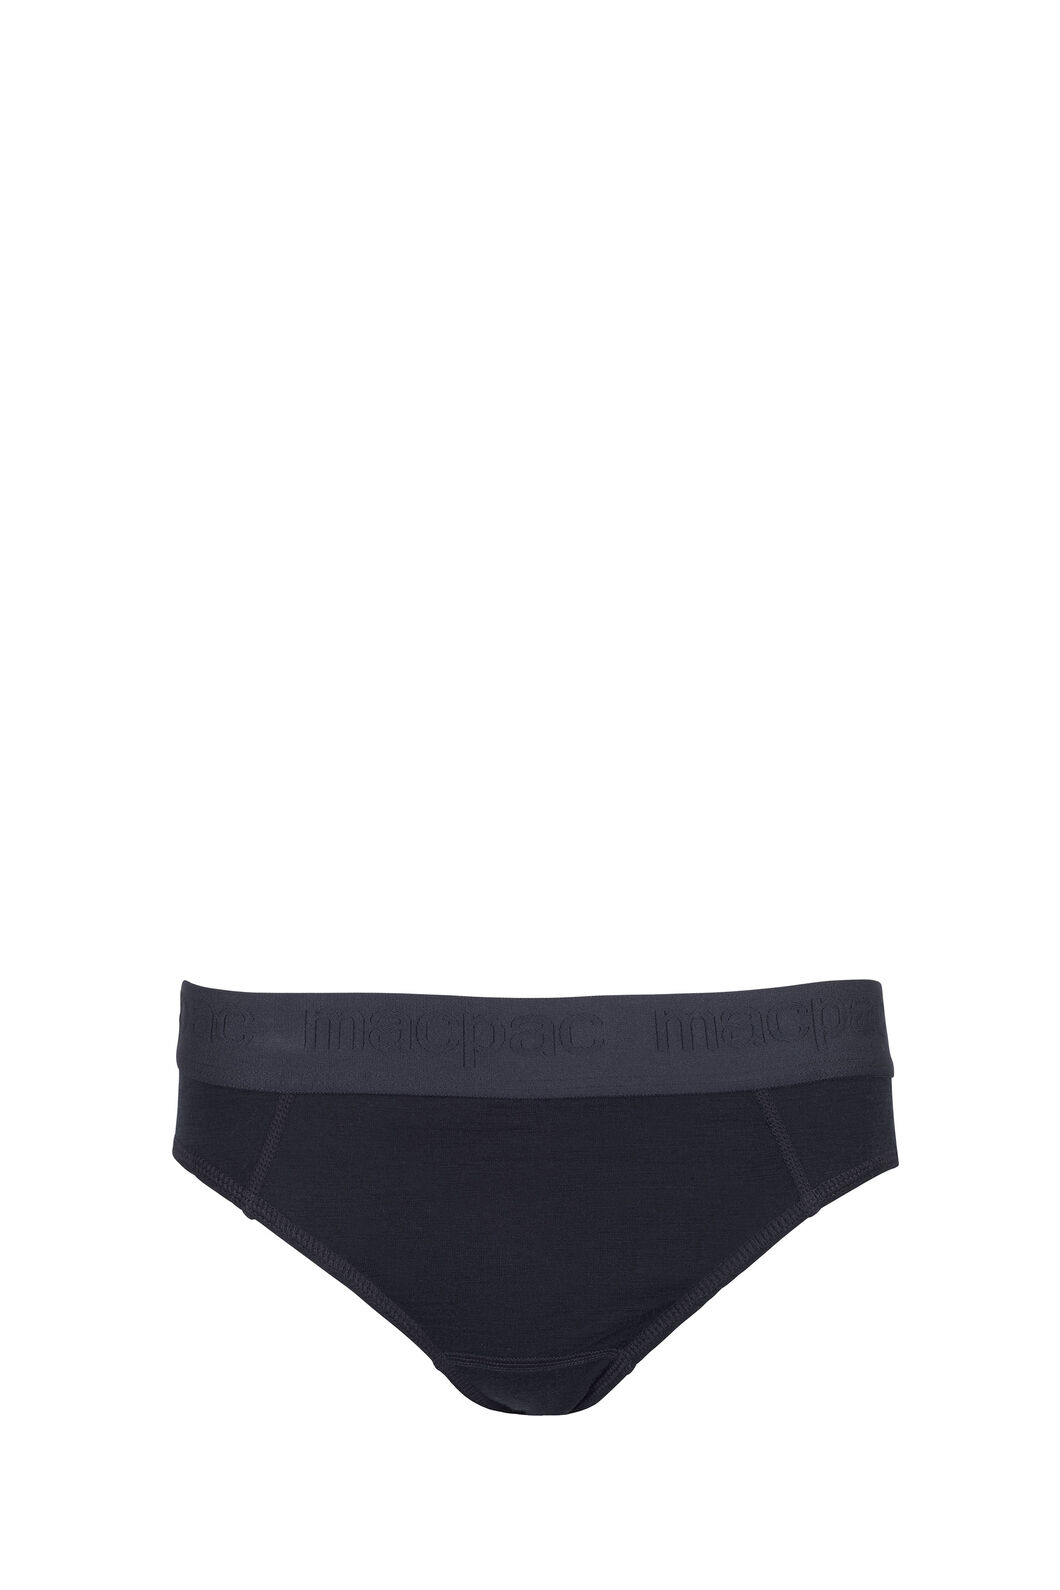 Macpac 180 Merino Brief - Women's, Black, hi-res